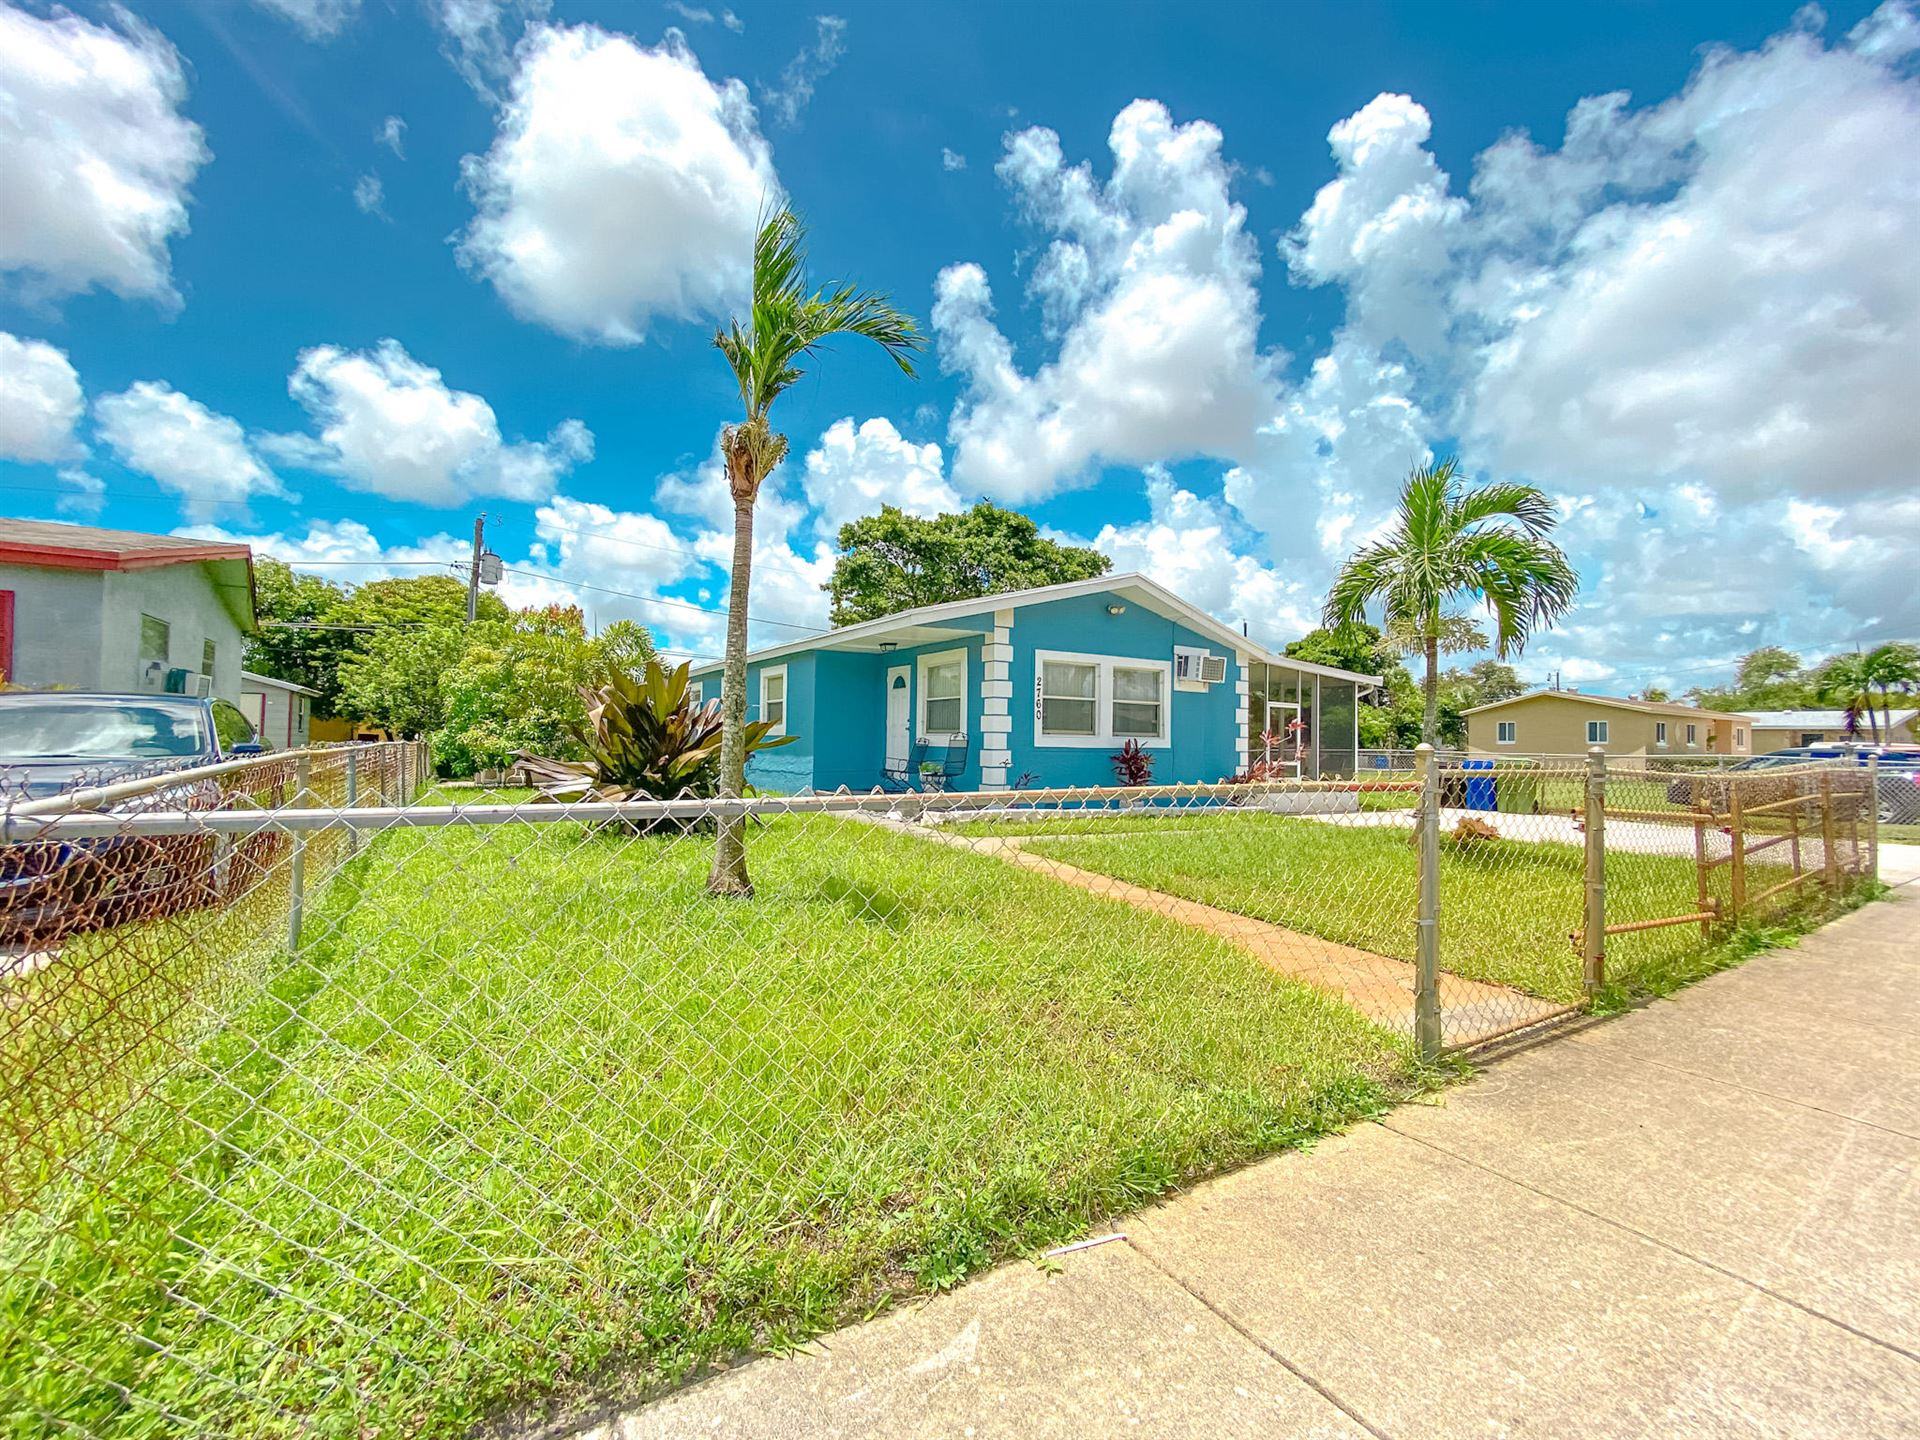 Photo of 2760 NW 23rd Street, Fort Lauderdale, FL 33311 (MLS # RX-10731870)